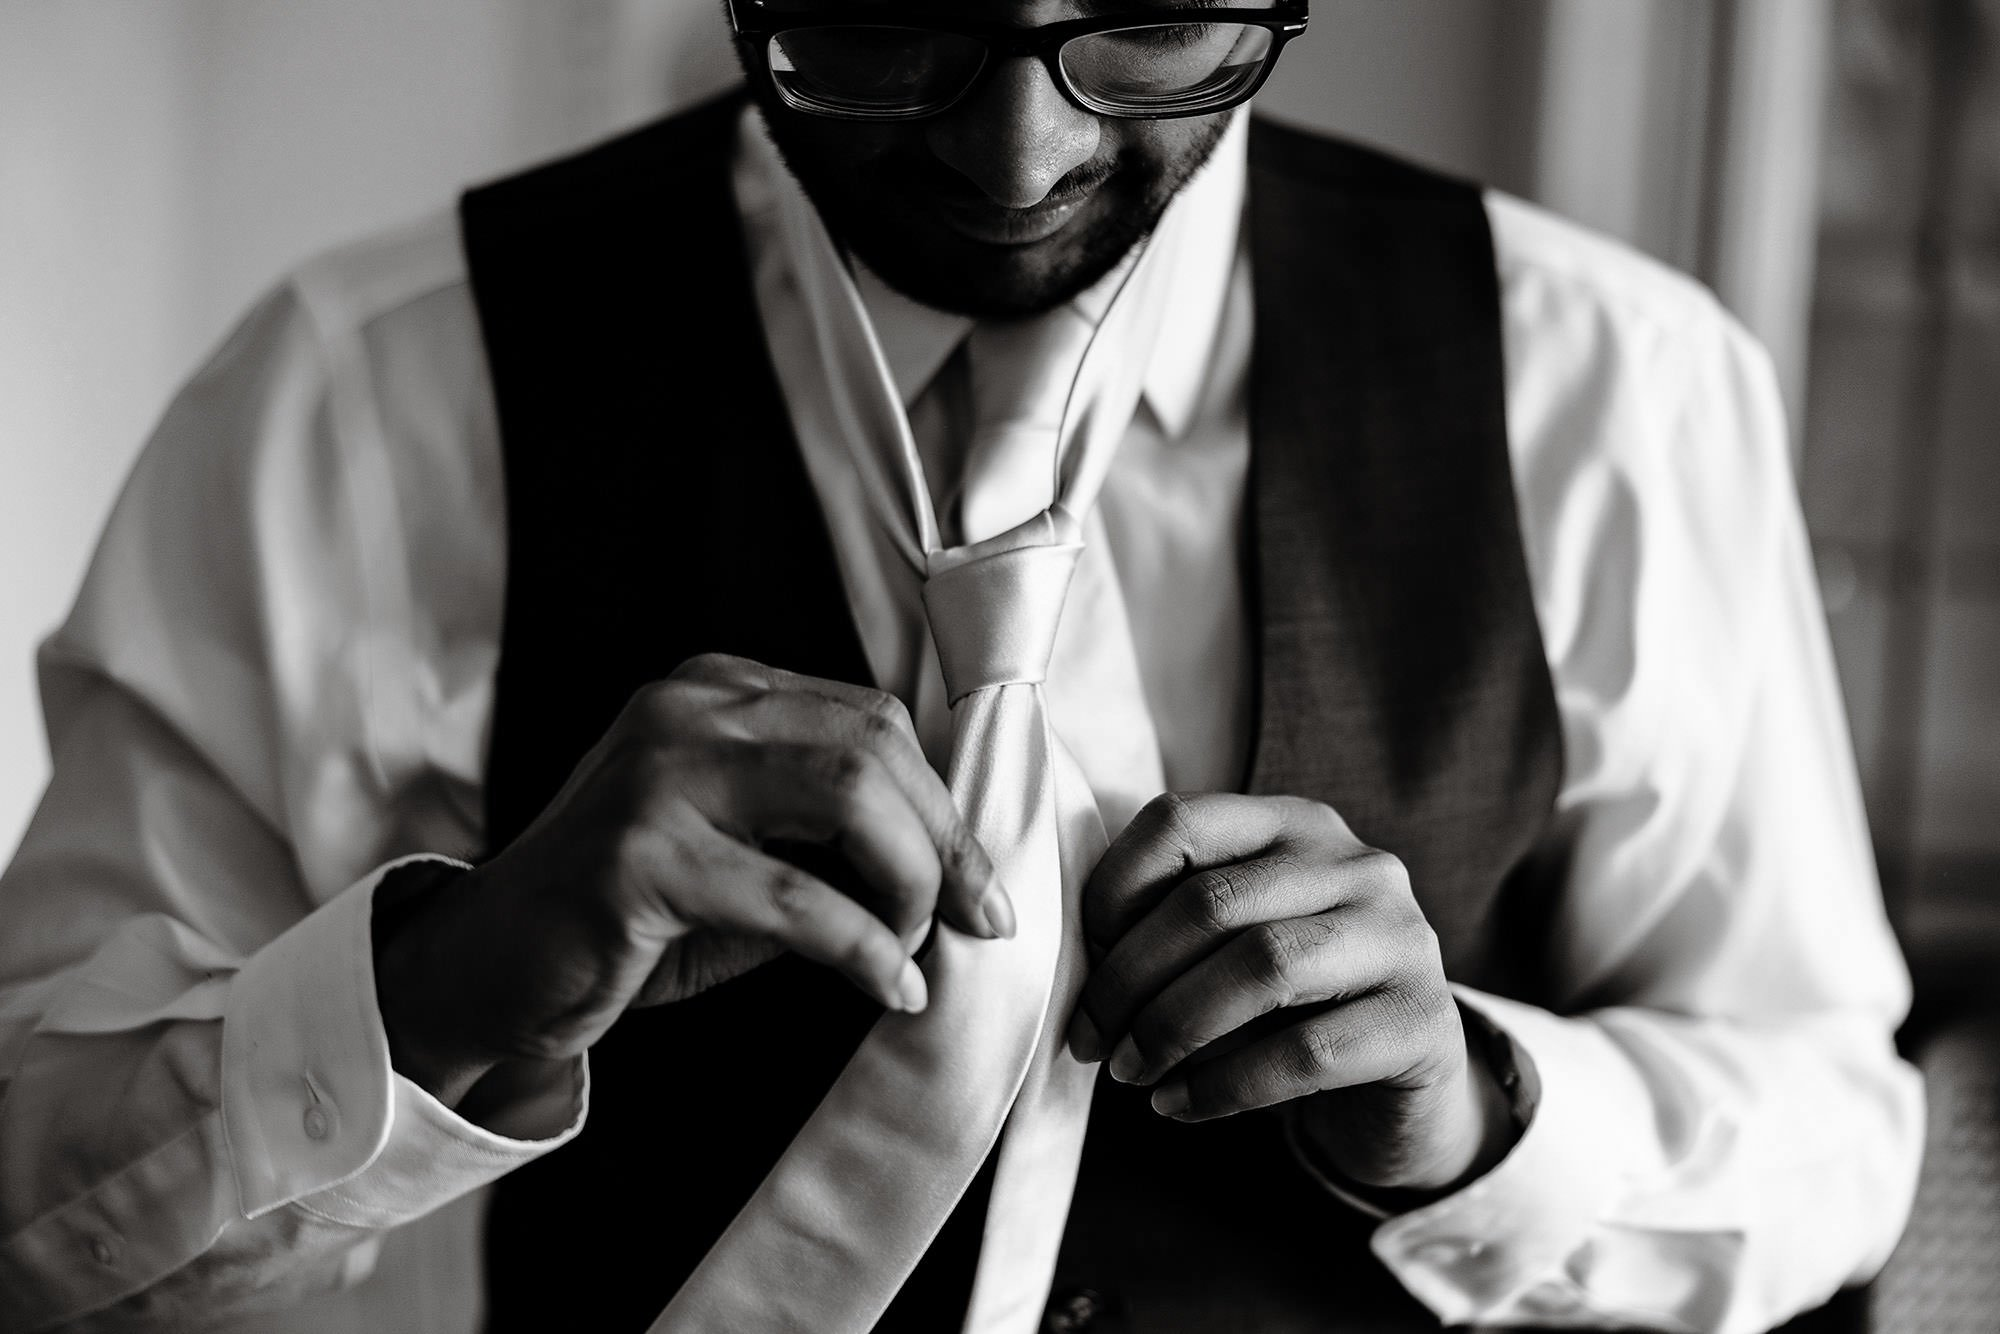 White Cliffs Country Club Wedding  I  The groom ties his tie prior to the wedding ceremony on Cape Cod.